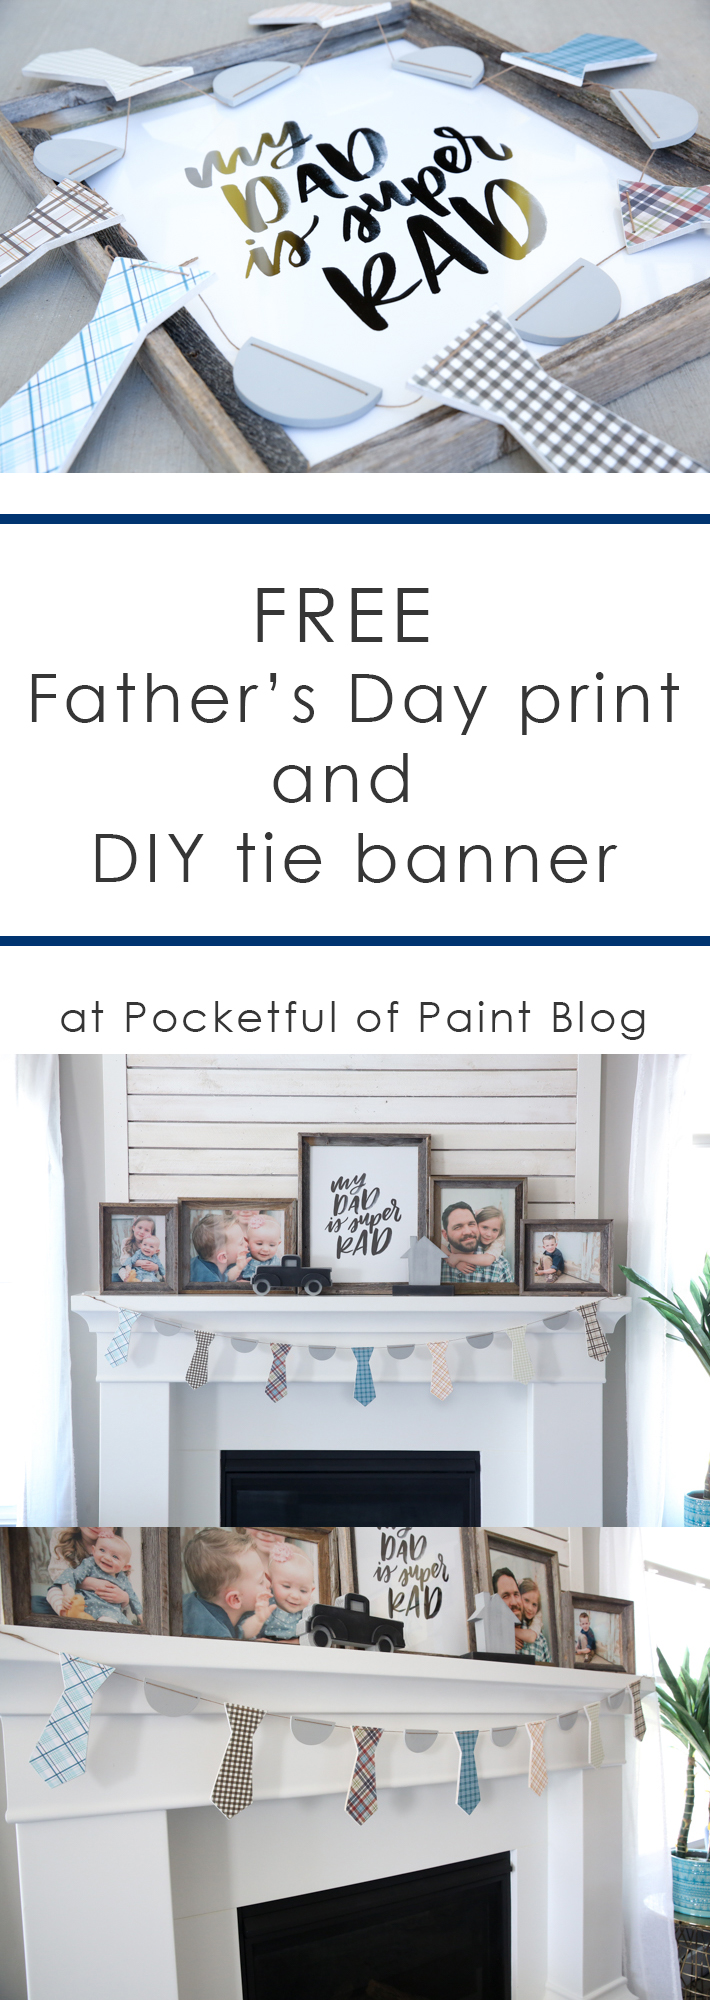 Father's Day Printable @pocketfulofpaint